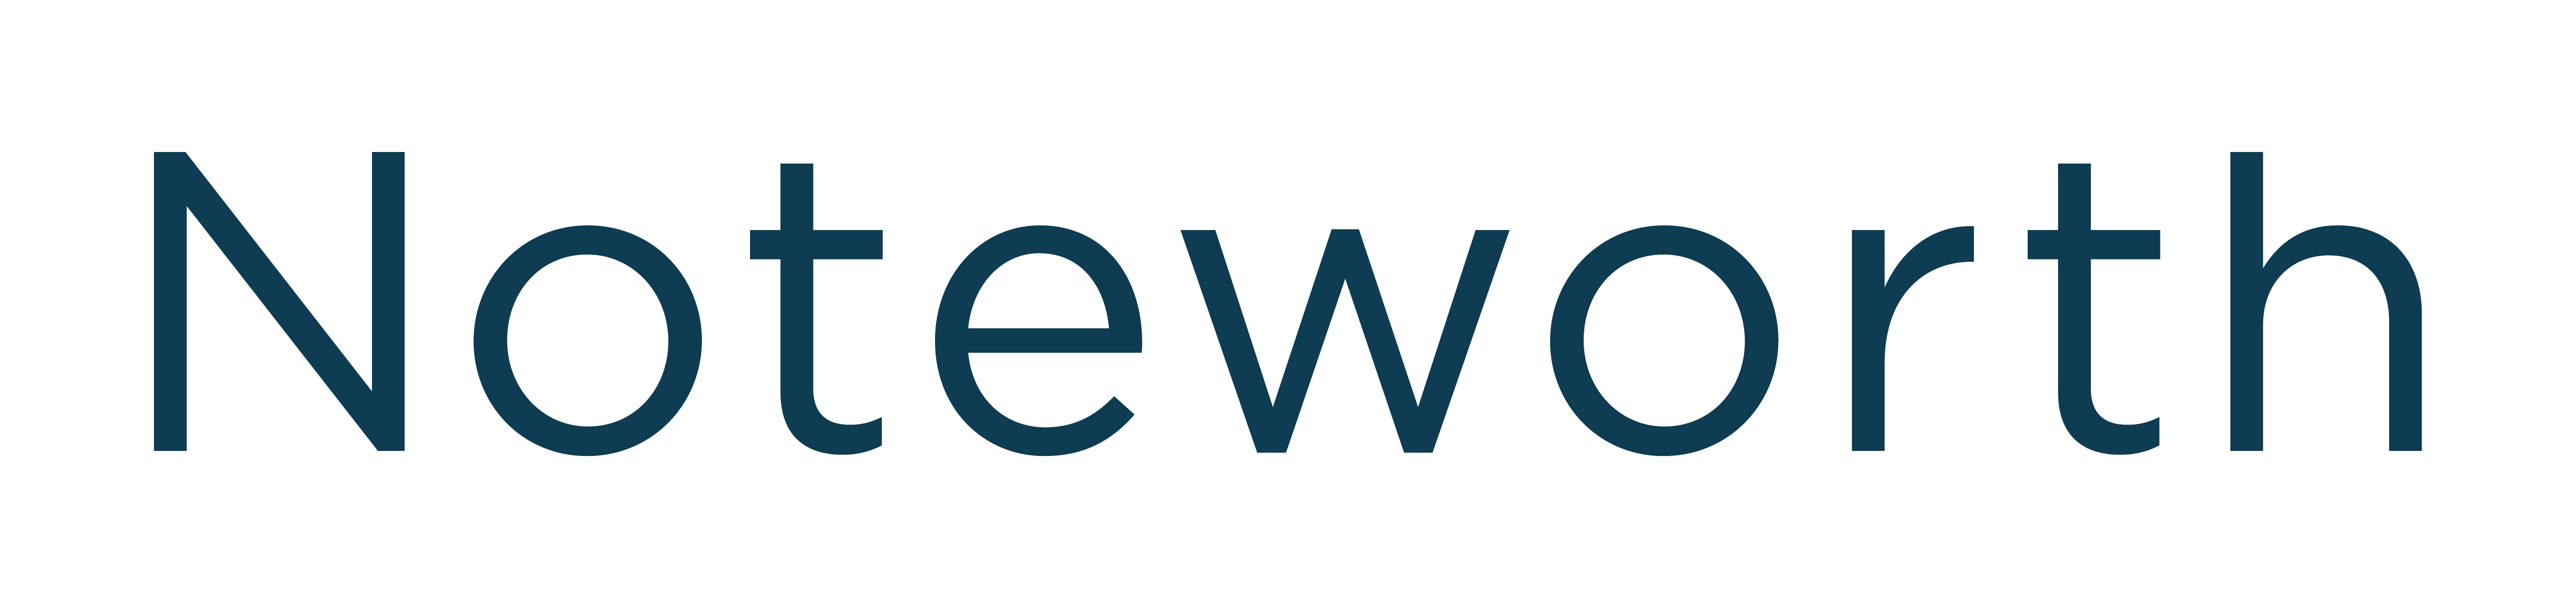 Noteworth logo